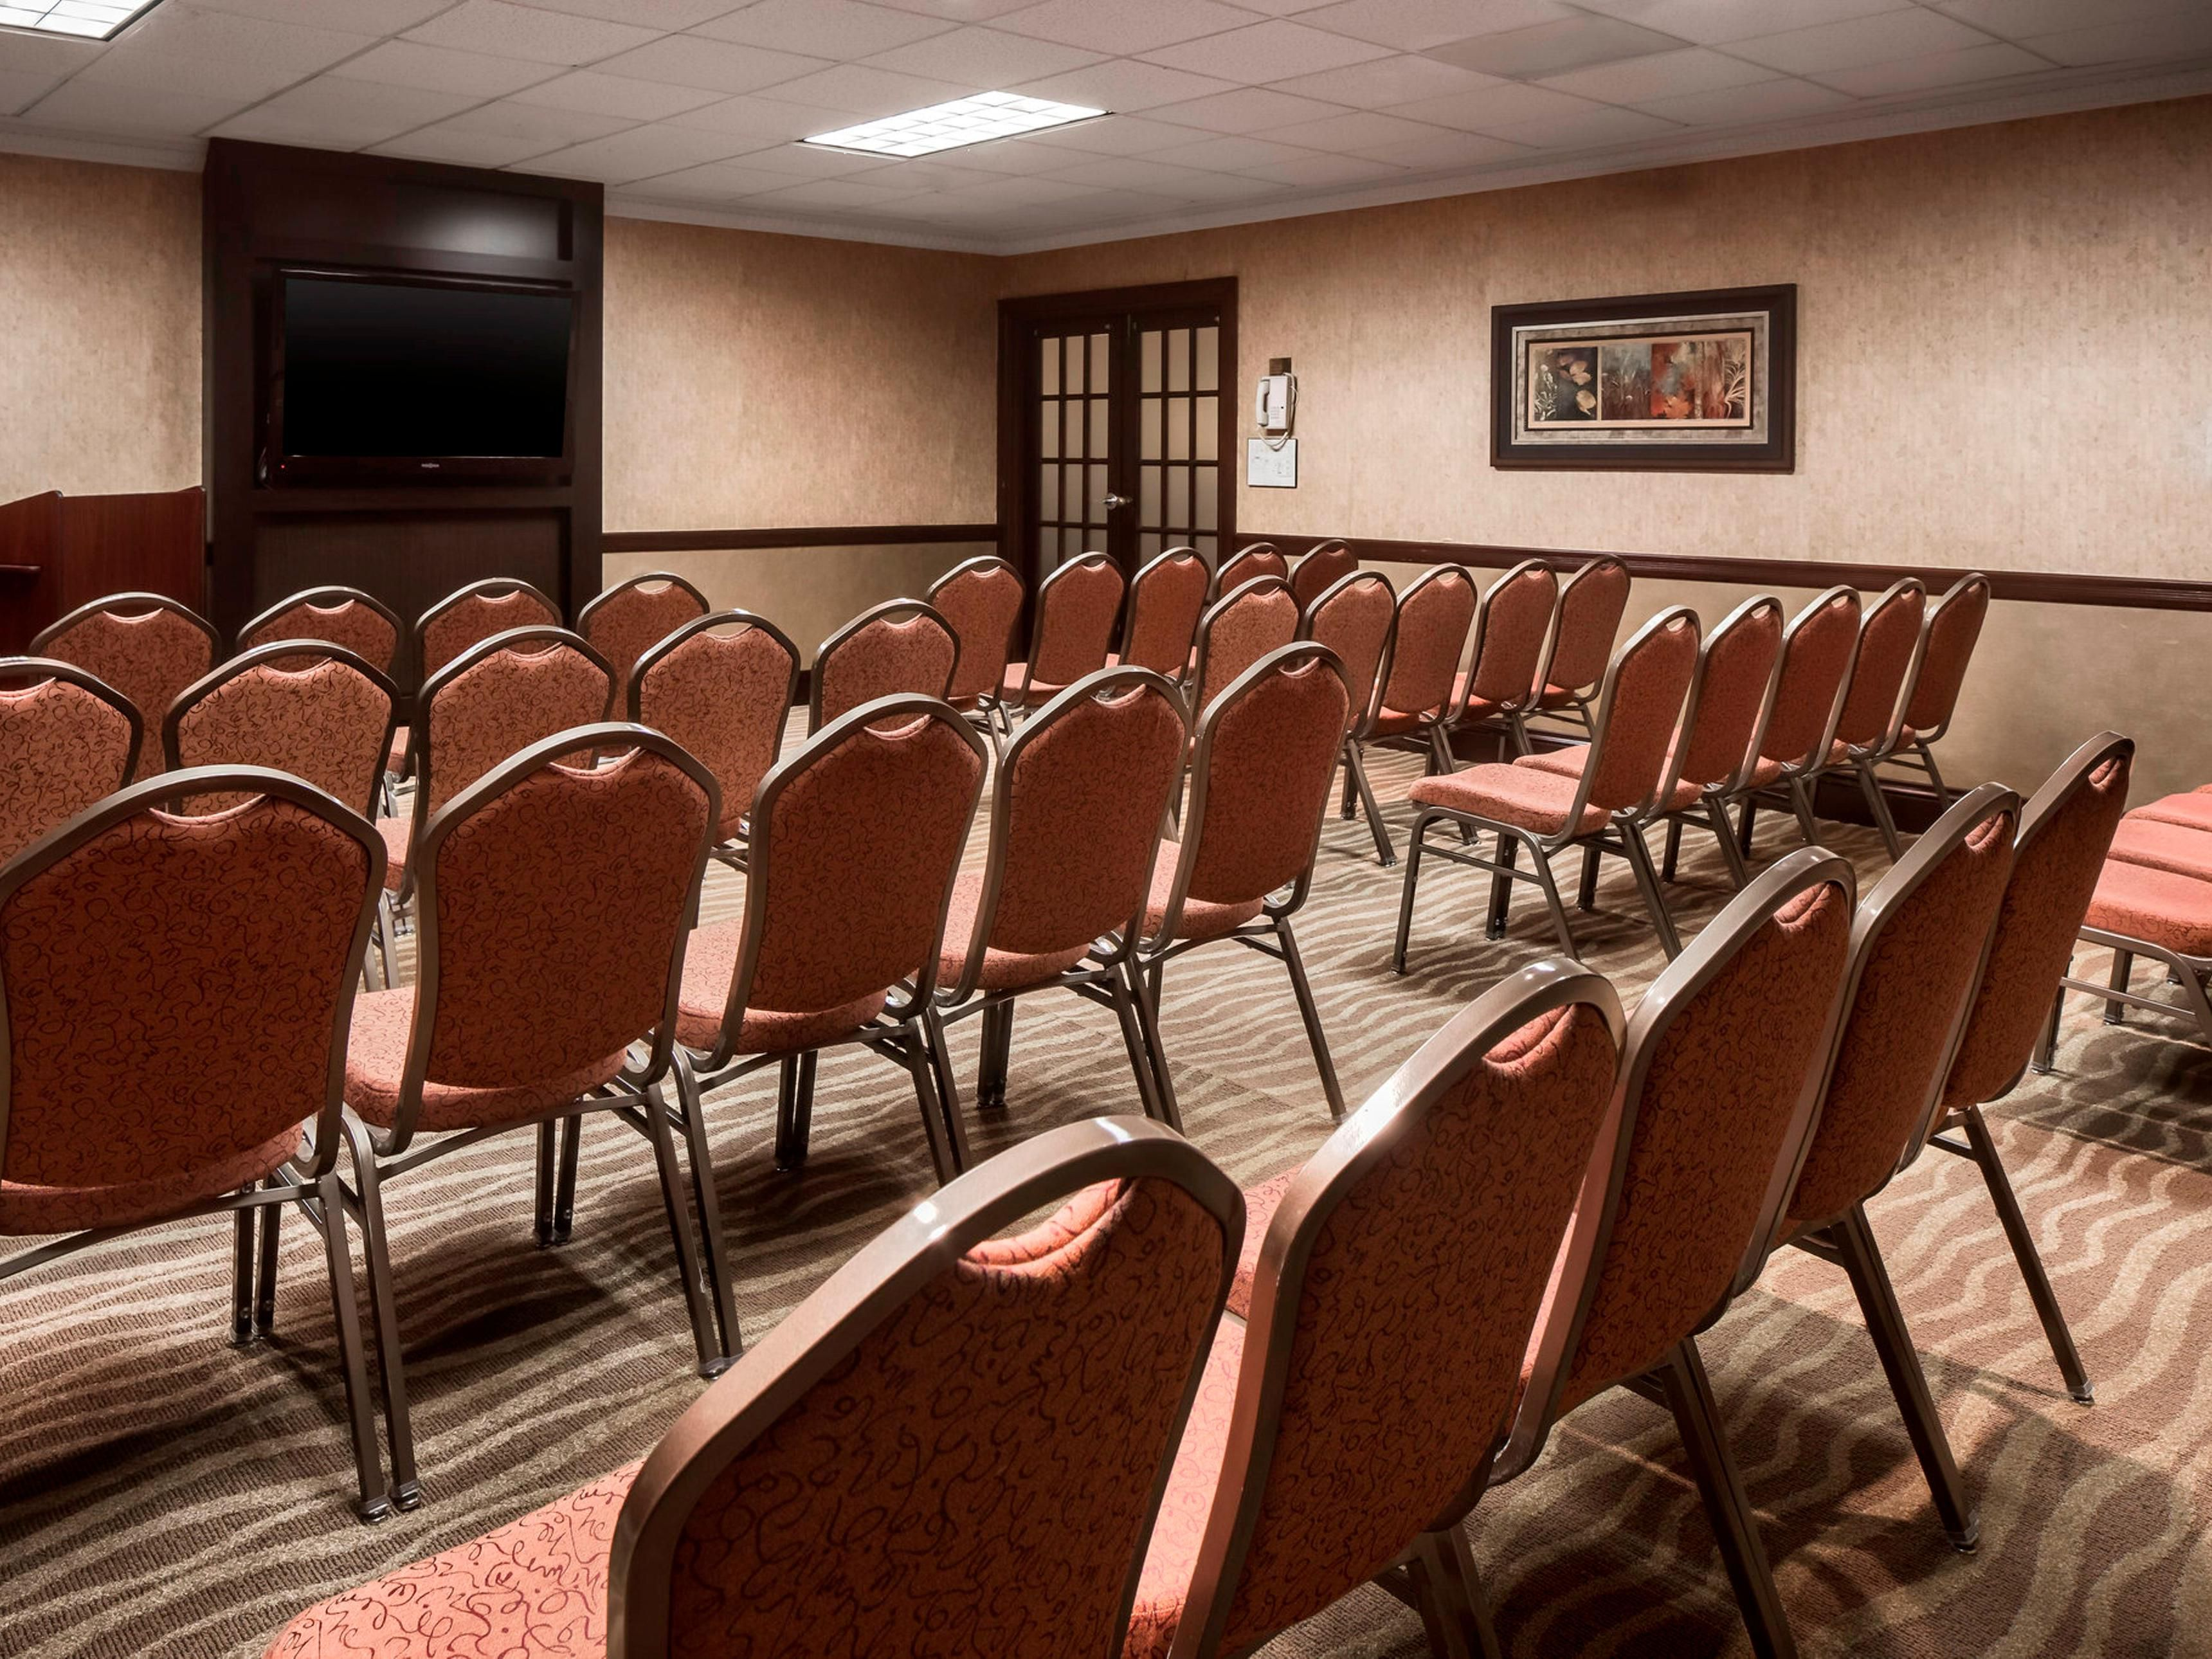 Our meeting rooms offer flexible seating arrangements.